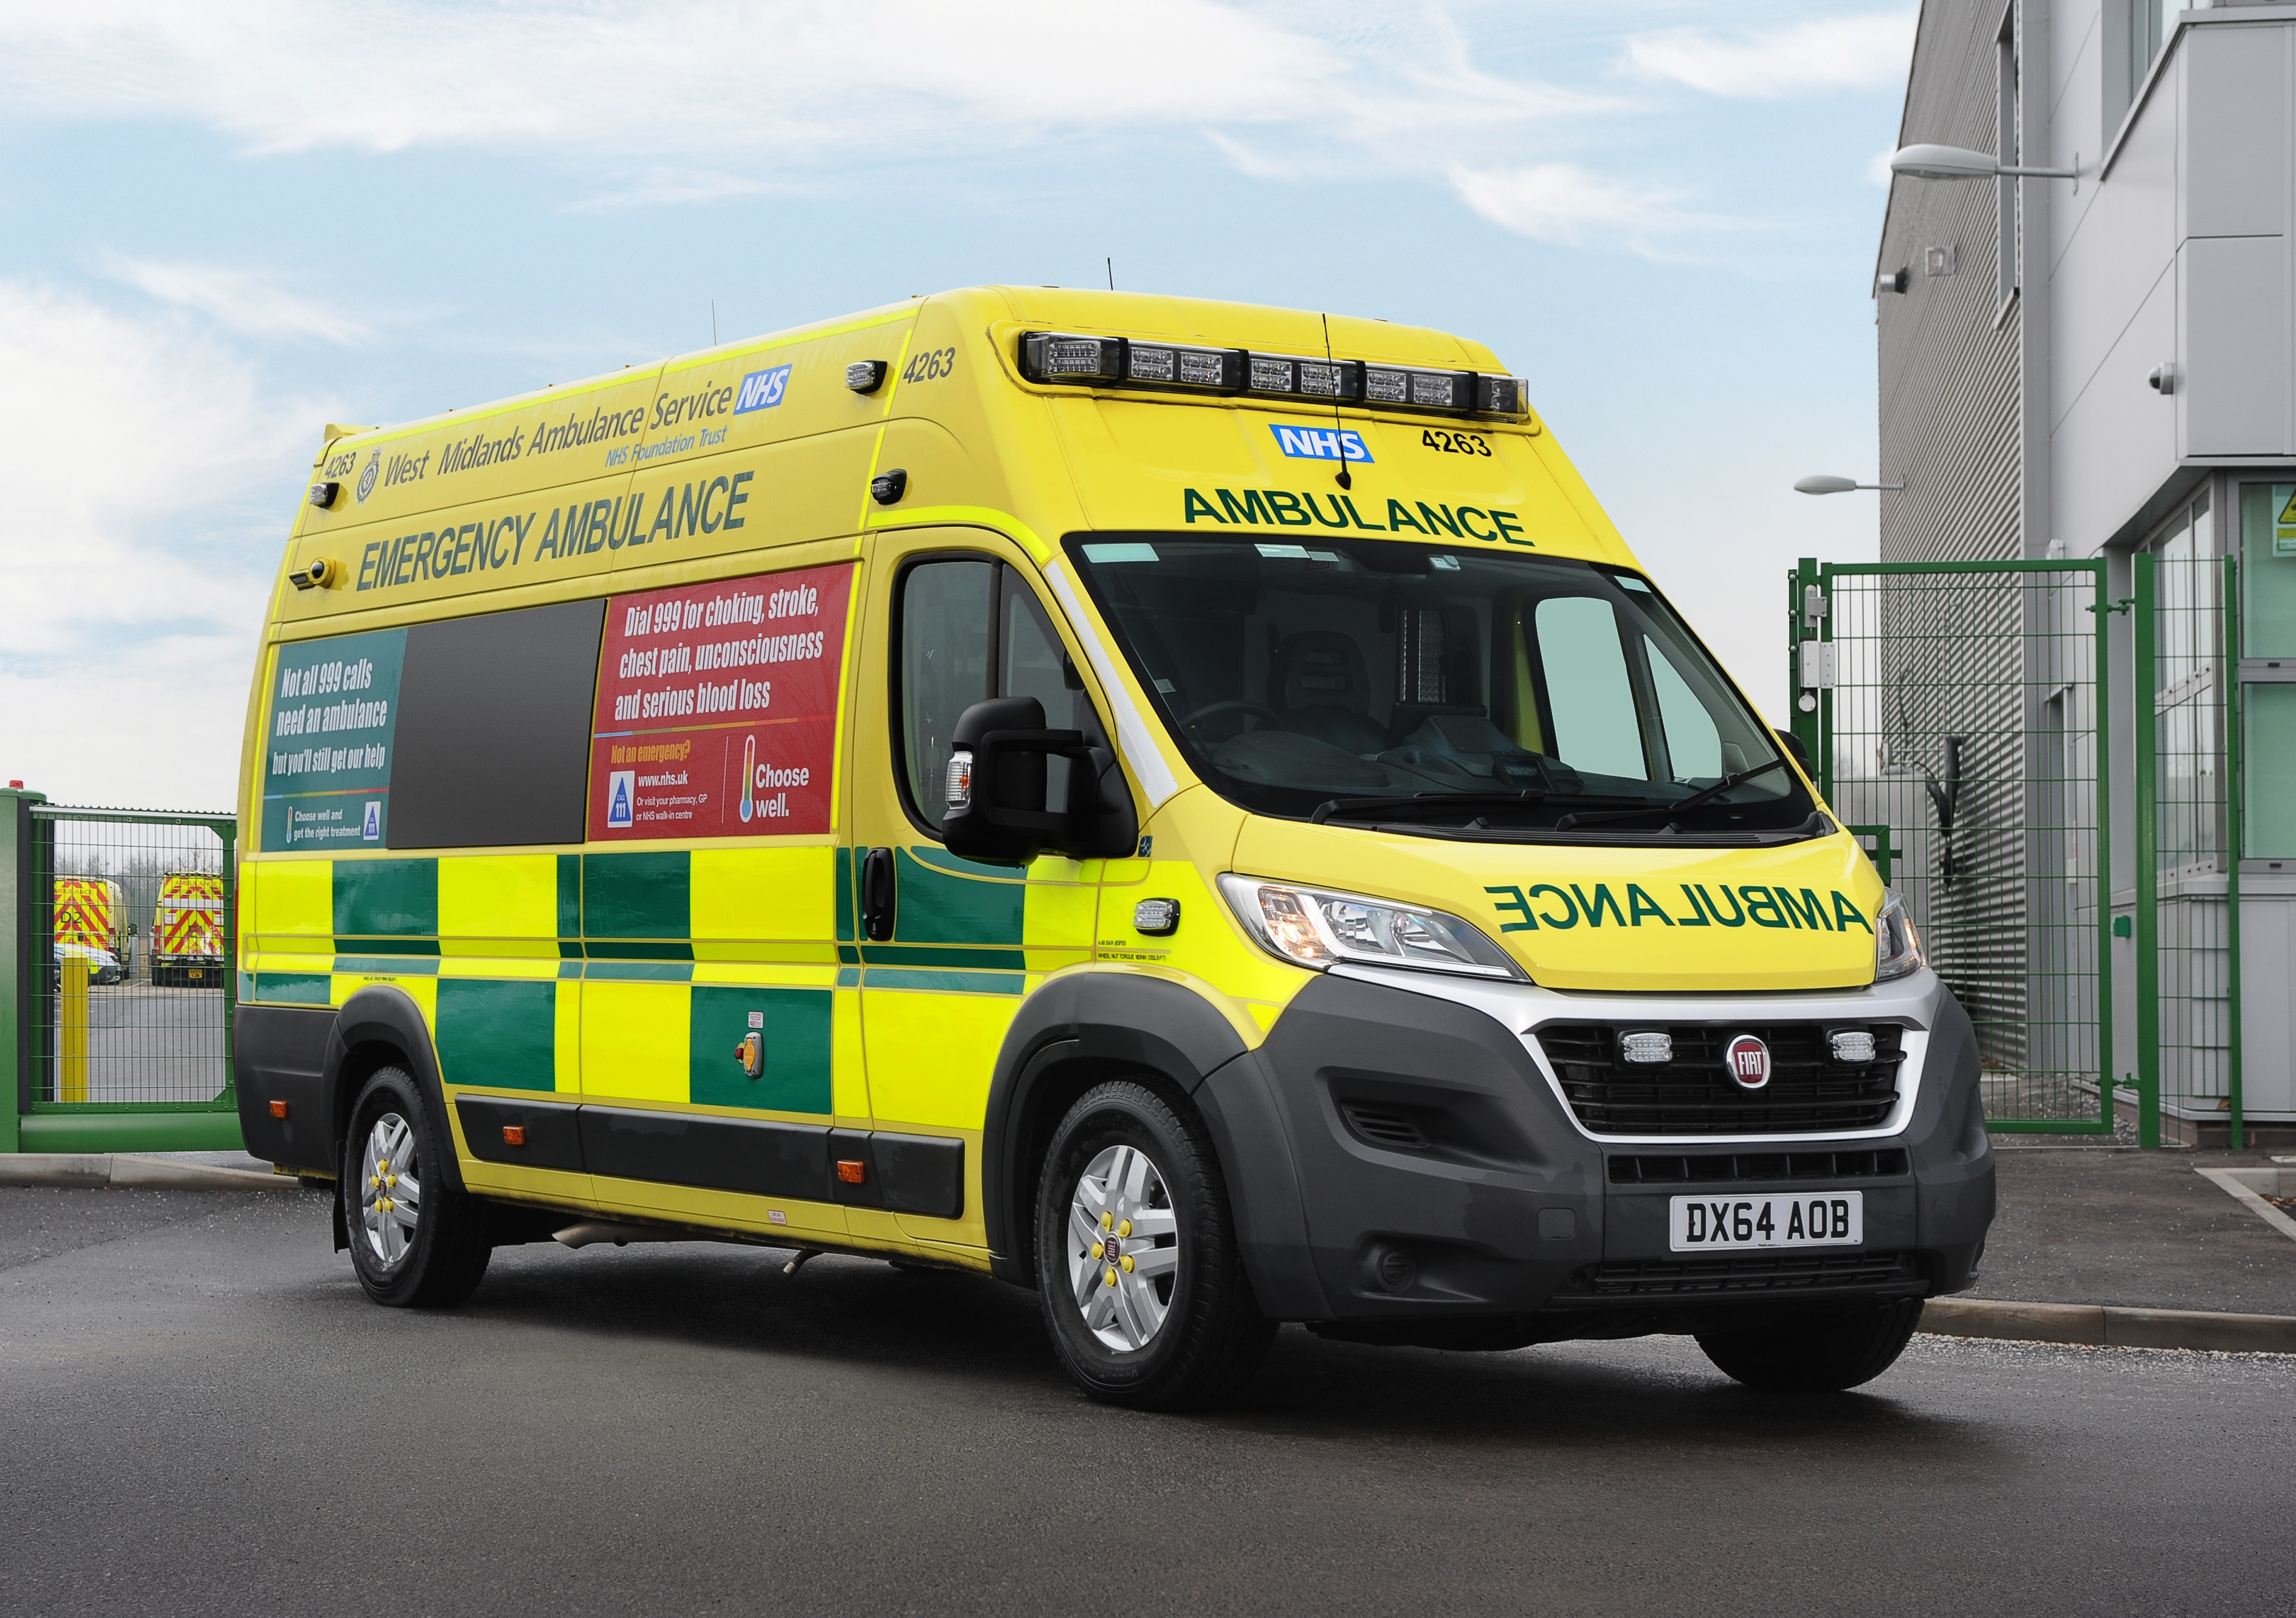 2015 Jeep Grand Cherokee >> WEST MIDLANDS AMBULANCE SERVICE CHOOSES FIAT DUCATO MAXI FOR ITS NEW FLEET OF AMBULANCES - Press ...